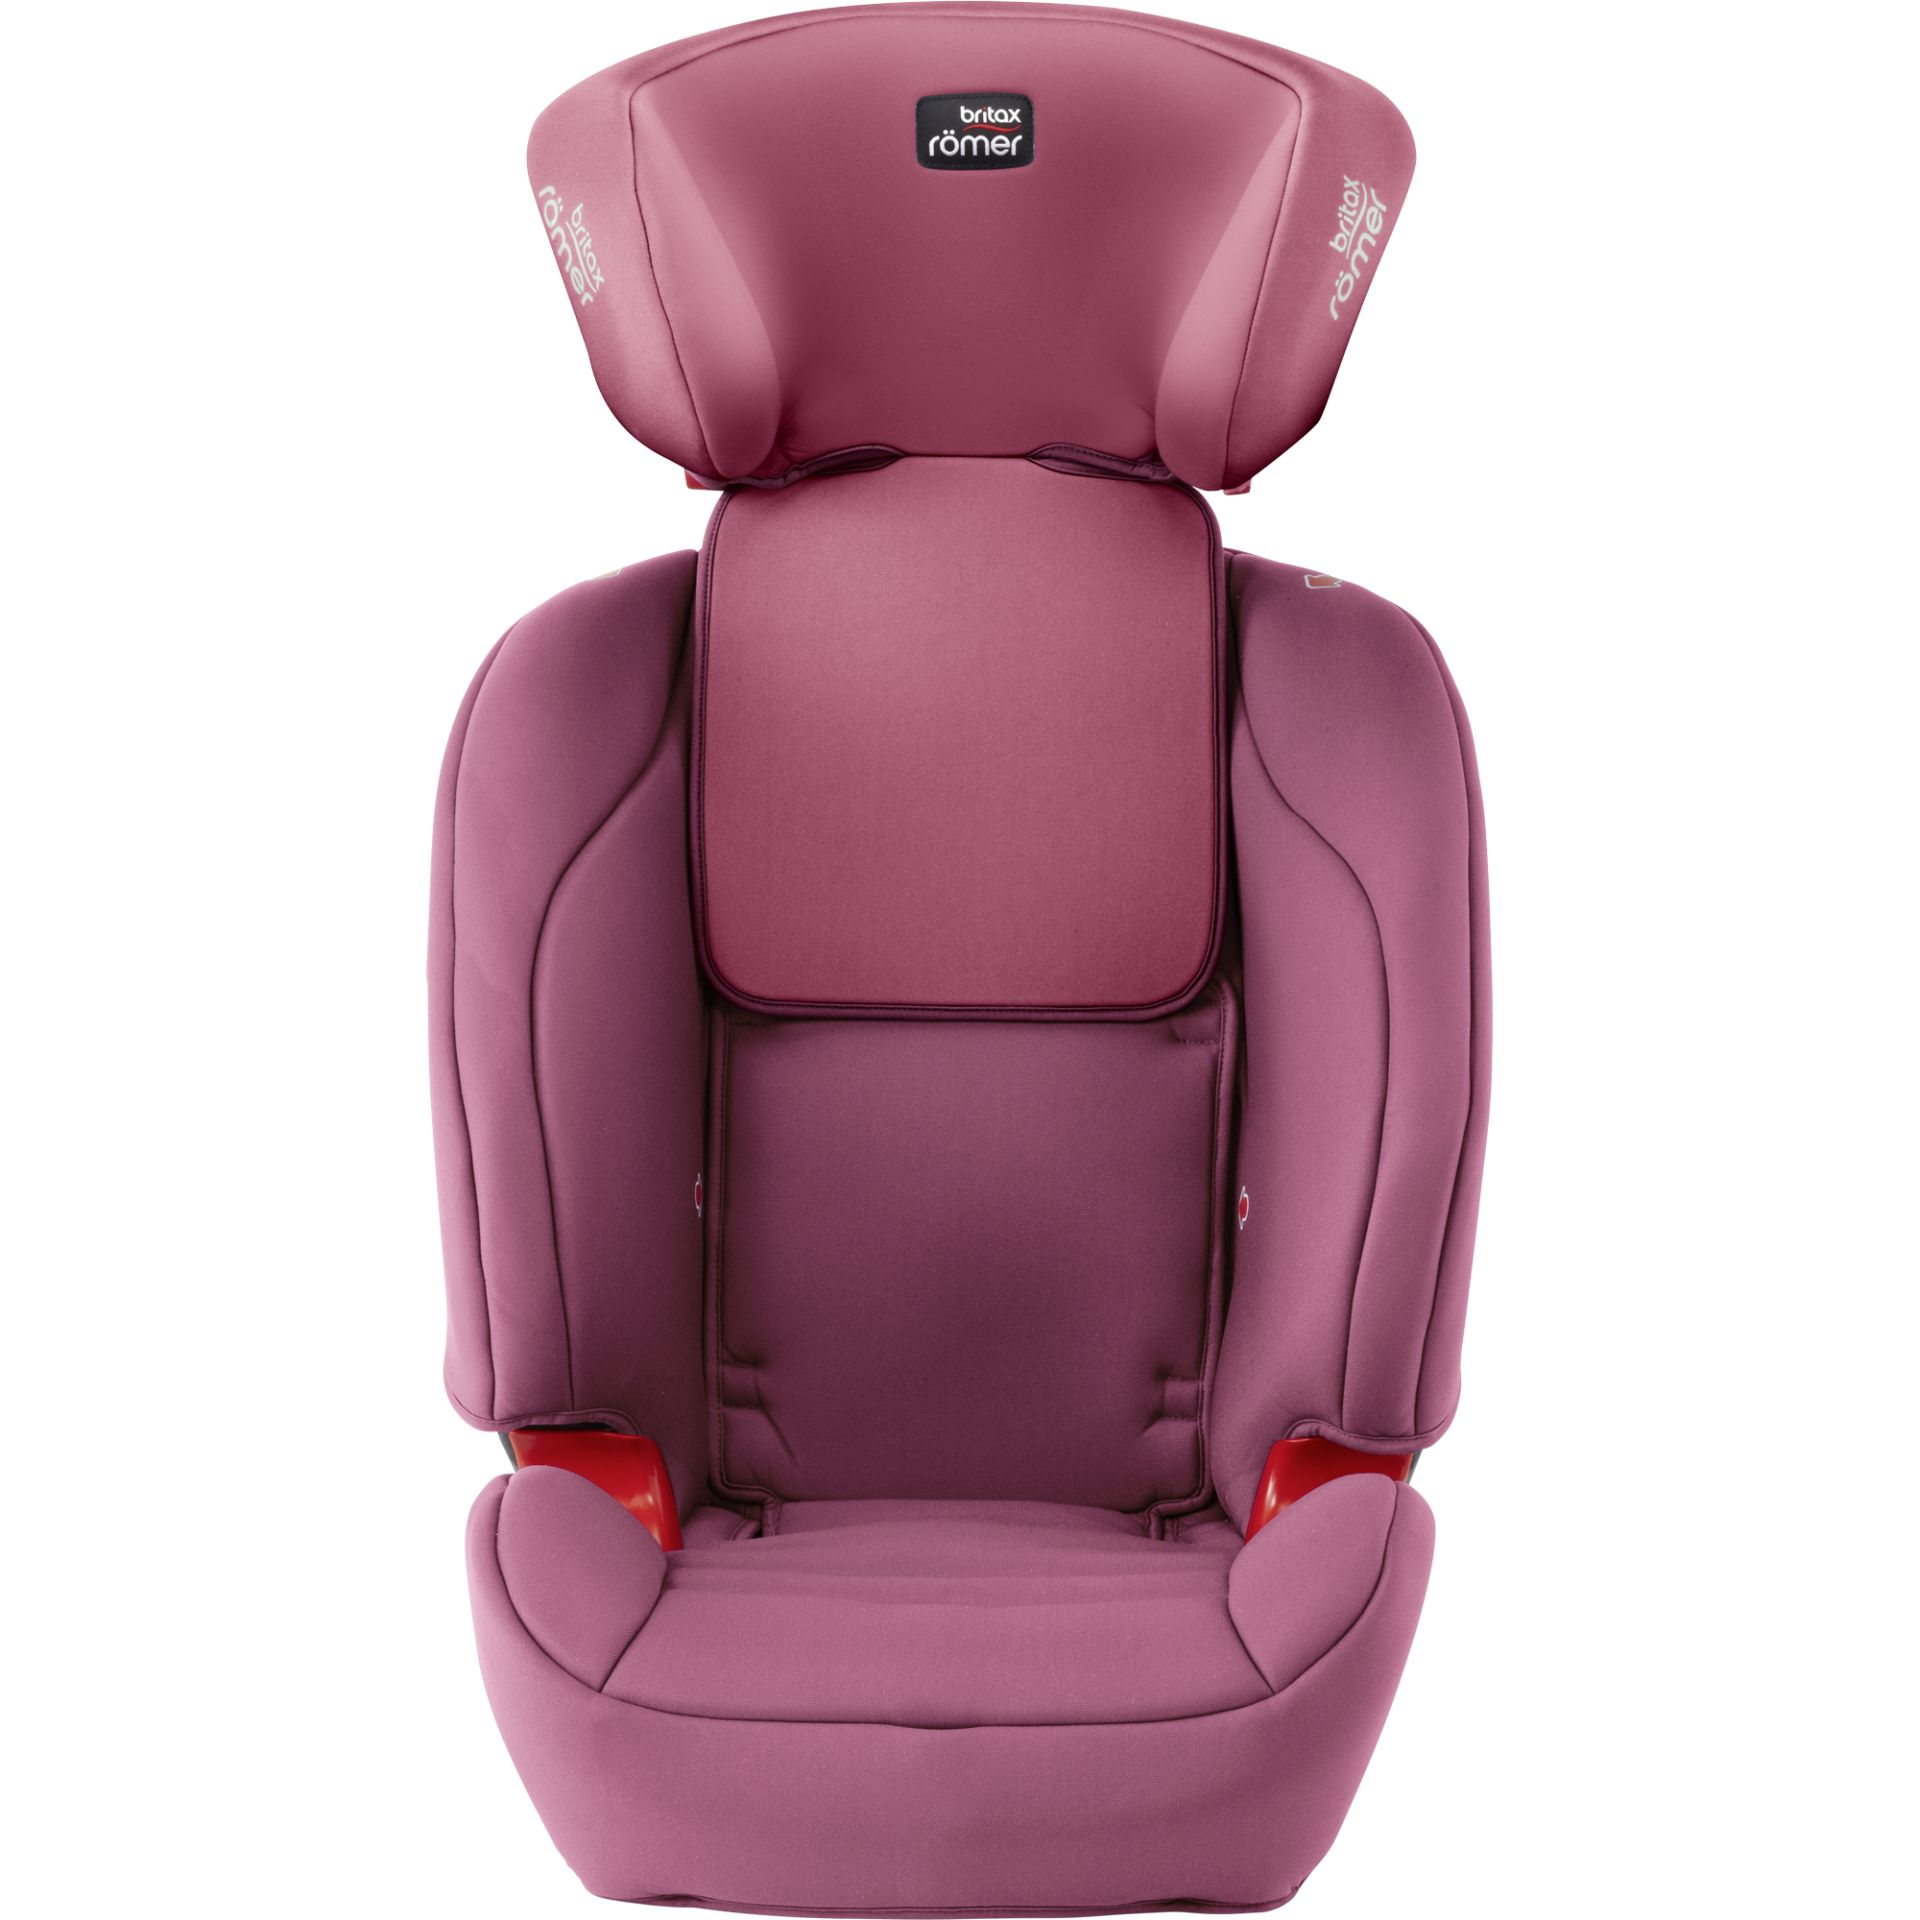 britax r mer evolva 1 2 3 sl sict isofix 2018 wine rose. Black Bedroom Furniture Sets. Home Design Ideas